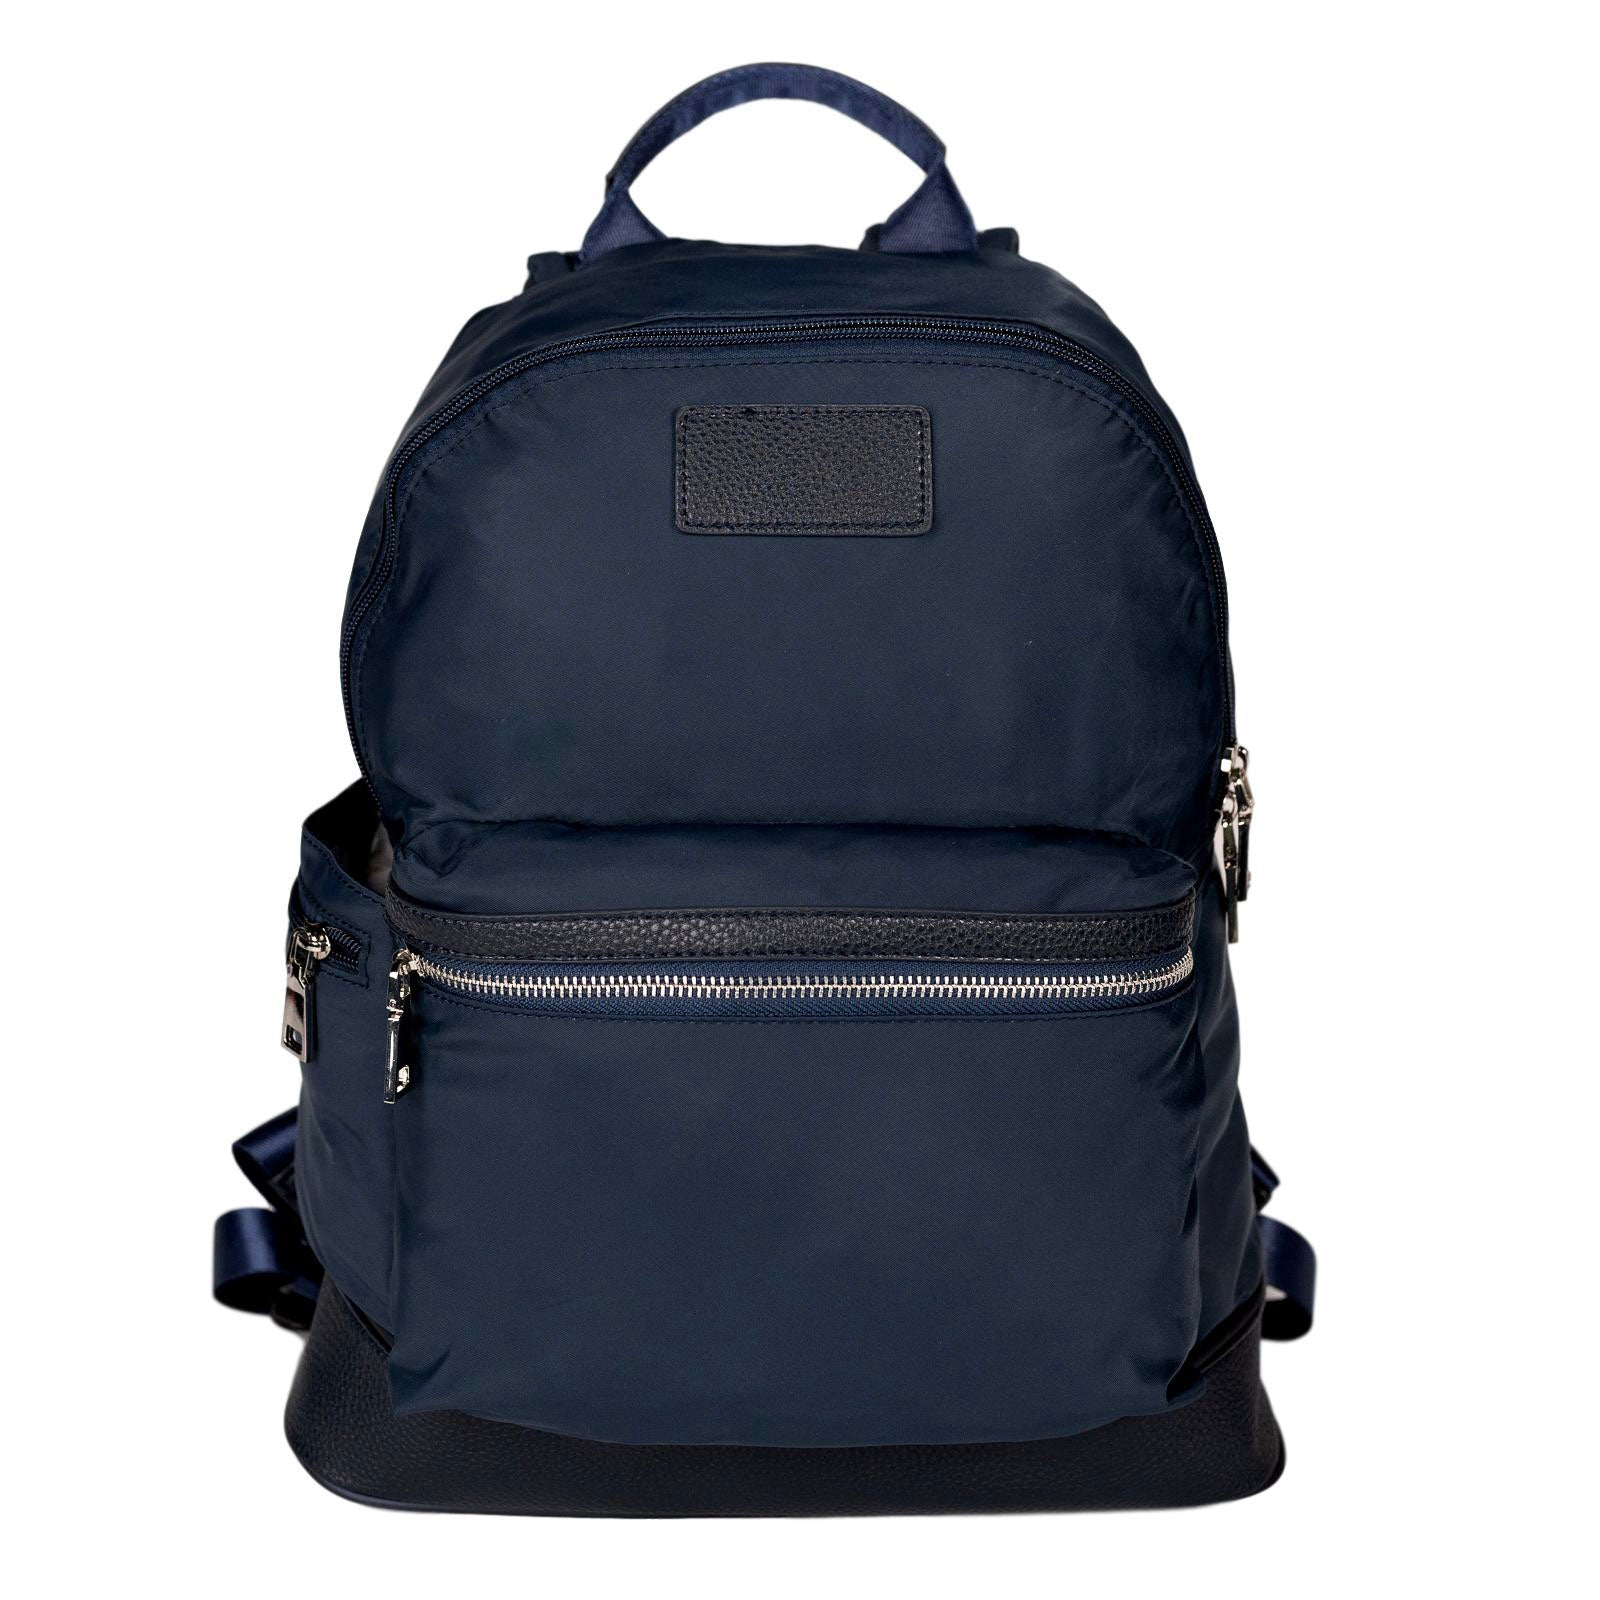 Mon Purse Nylon Bailey Backpack in Navy